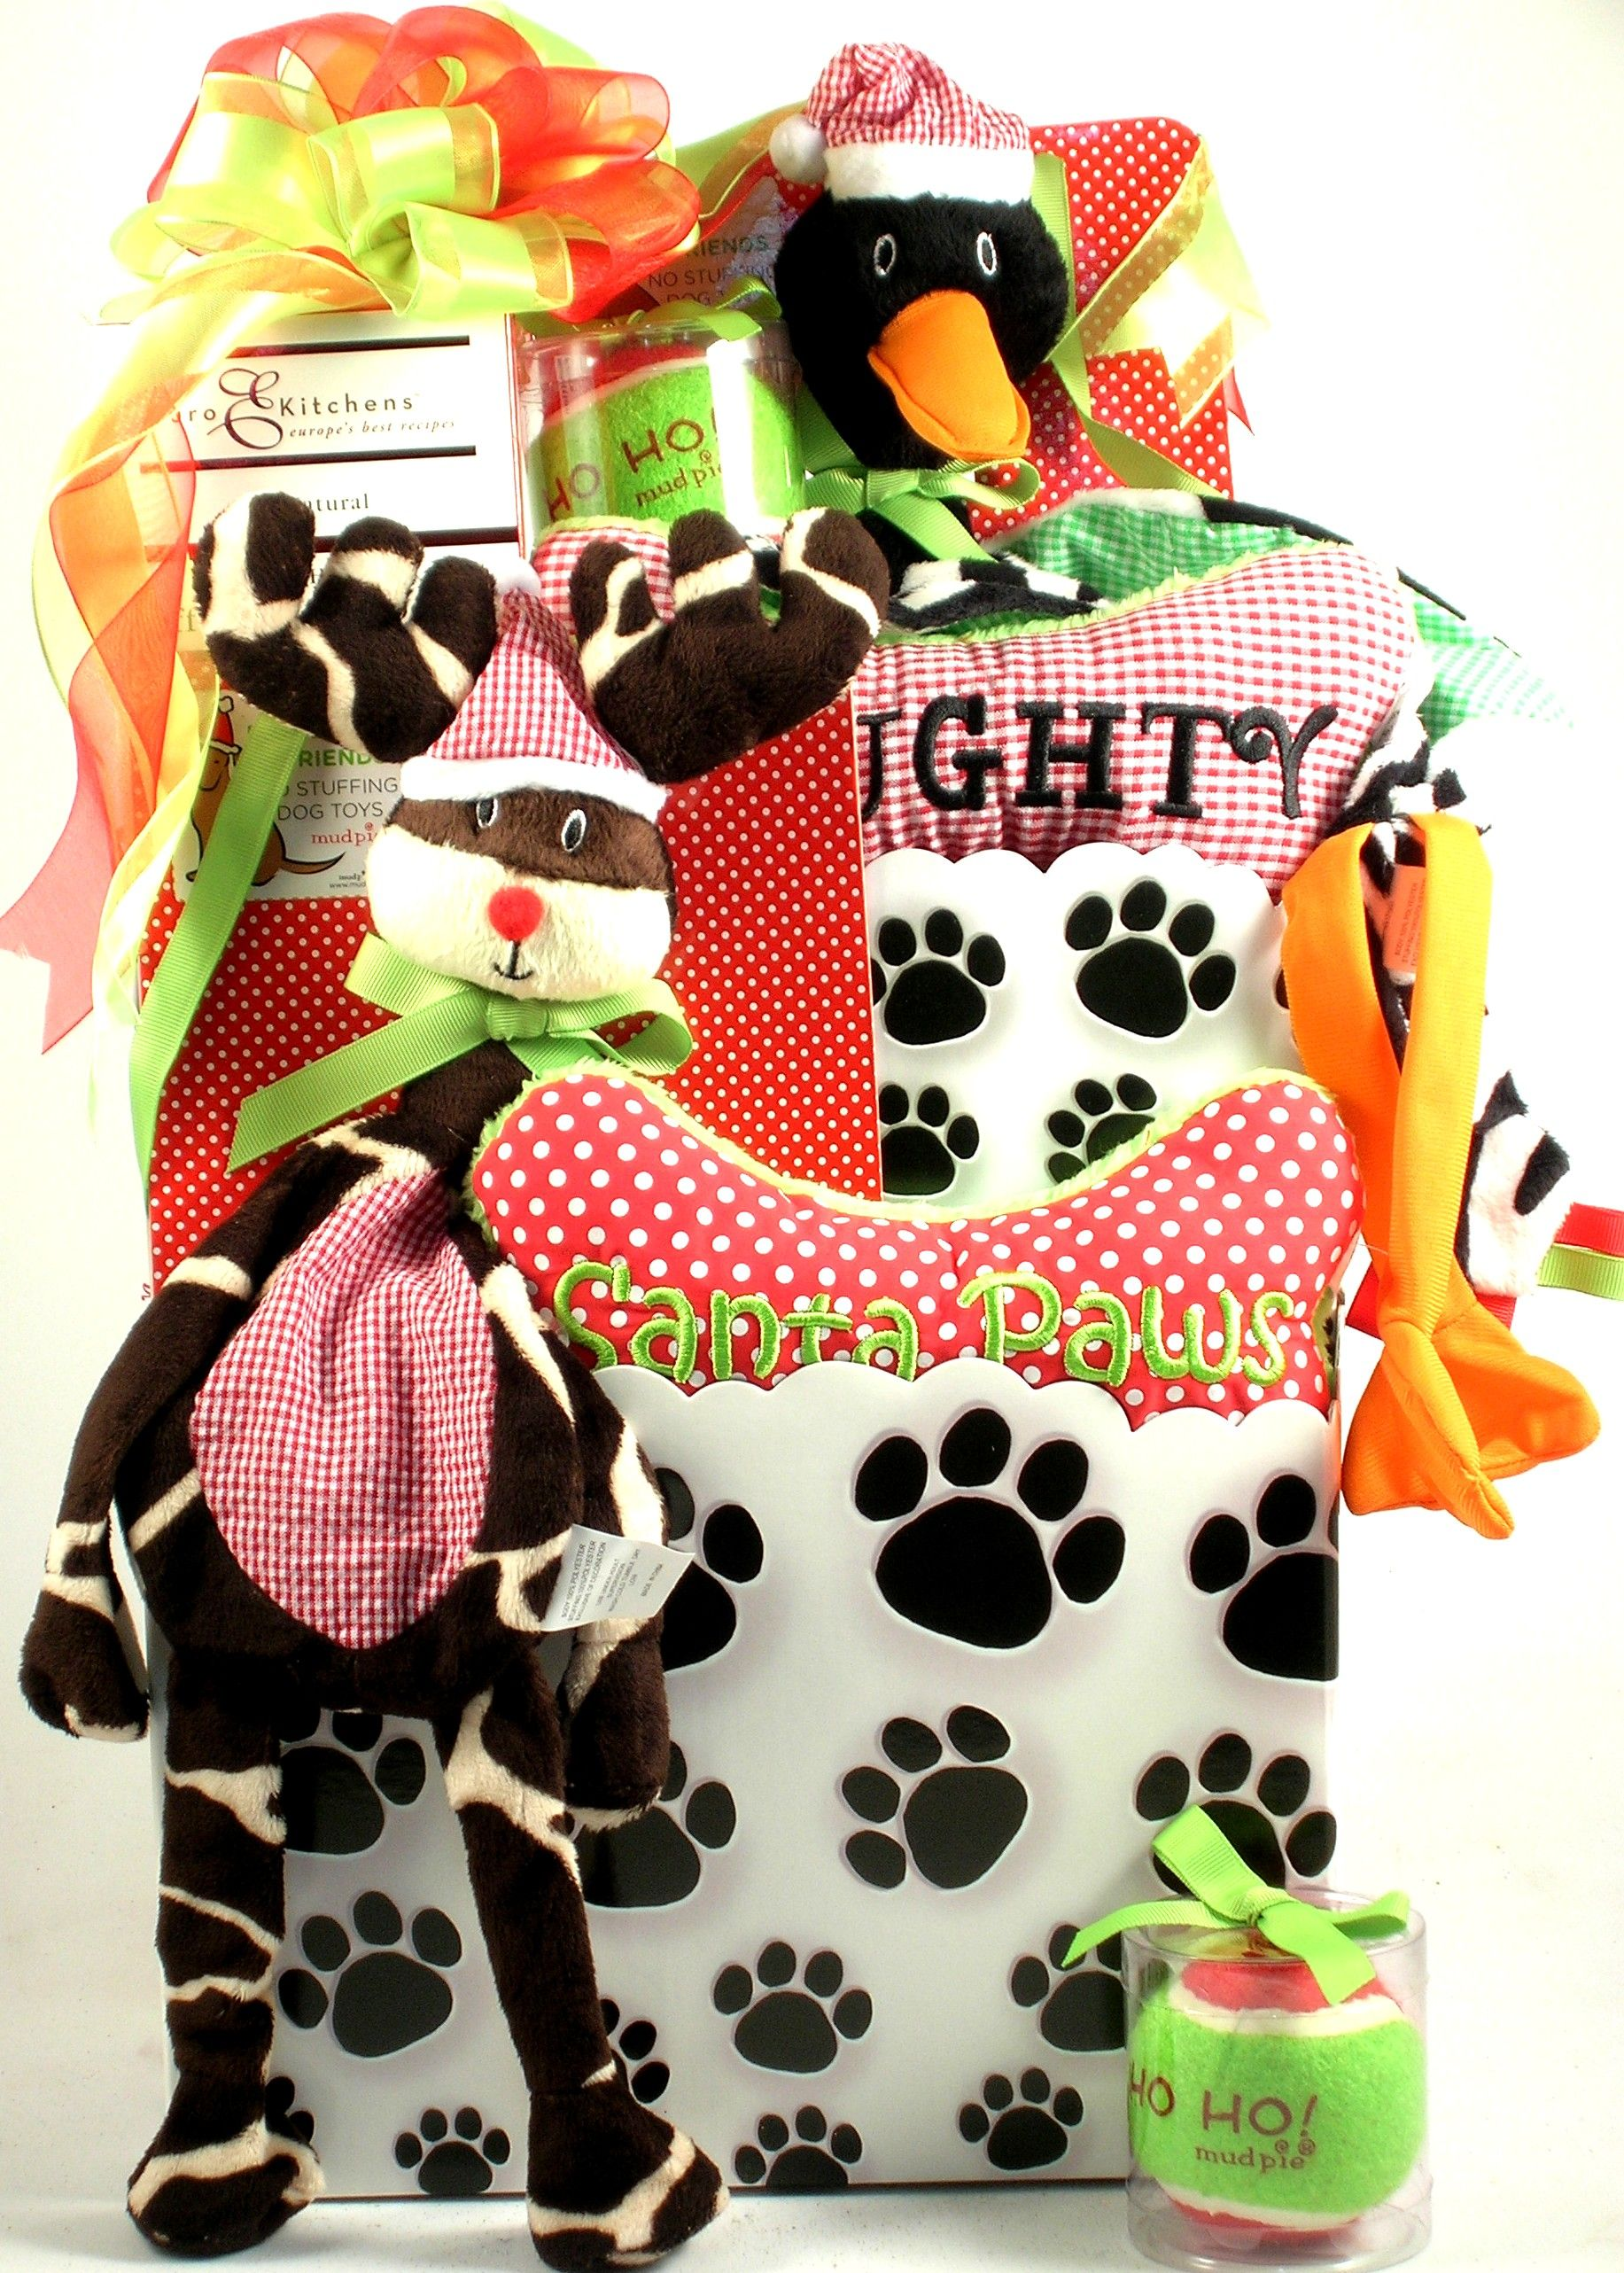 Pin by Jackie C. on Favorite Pooch Ideas Dog gifts, Gift